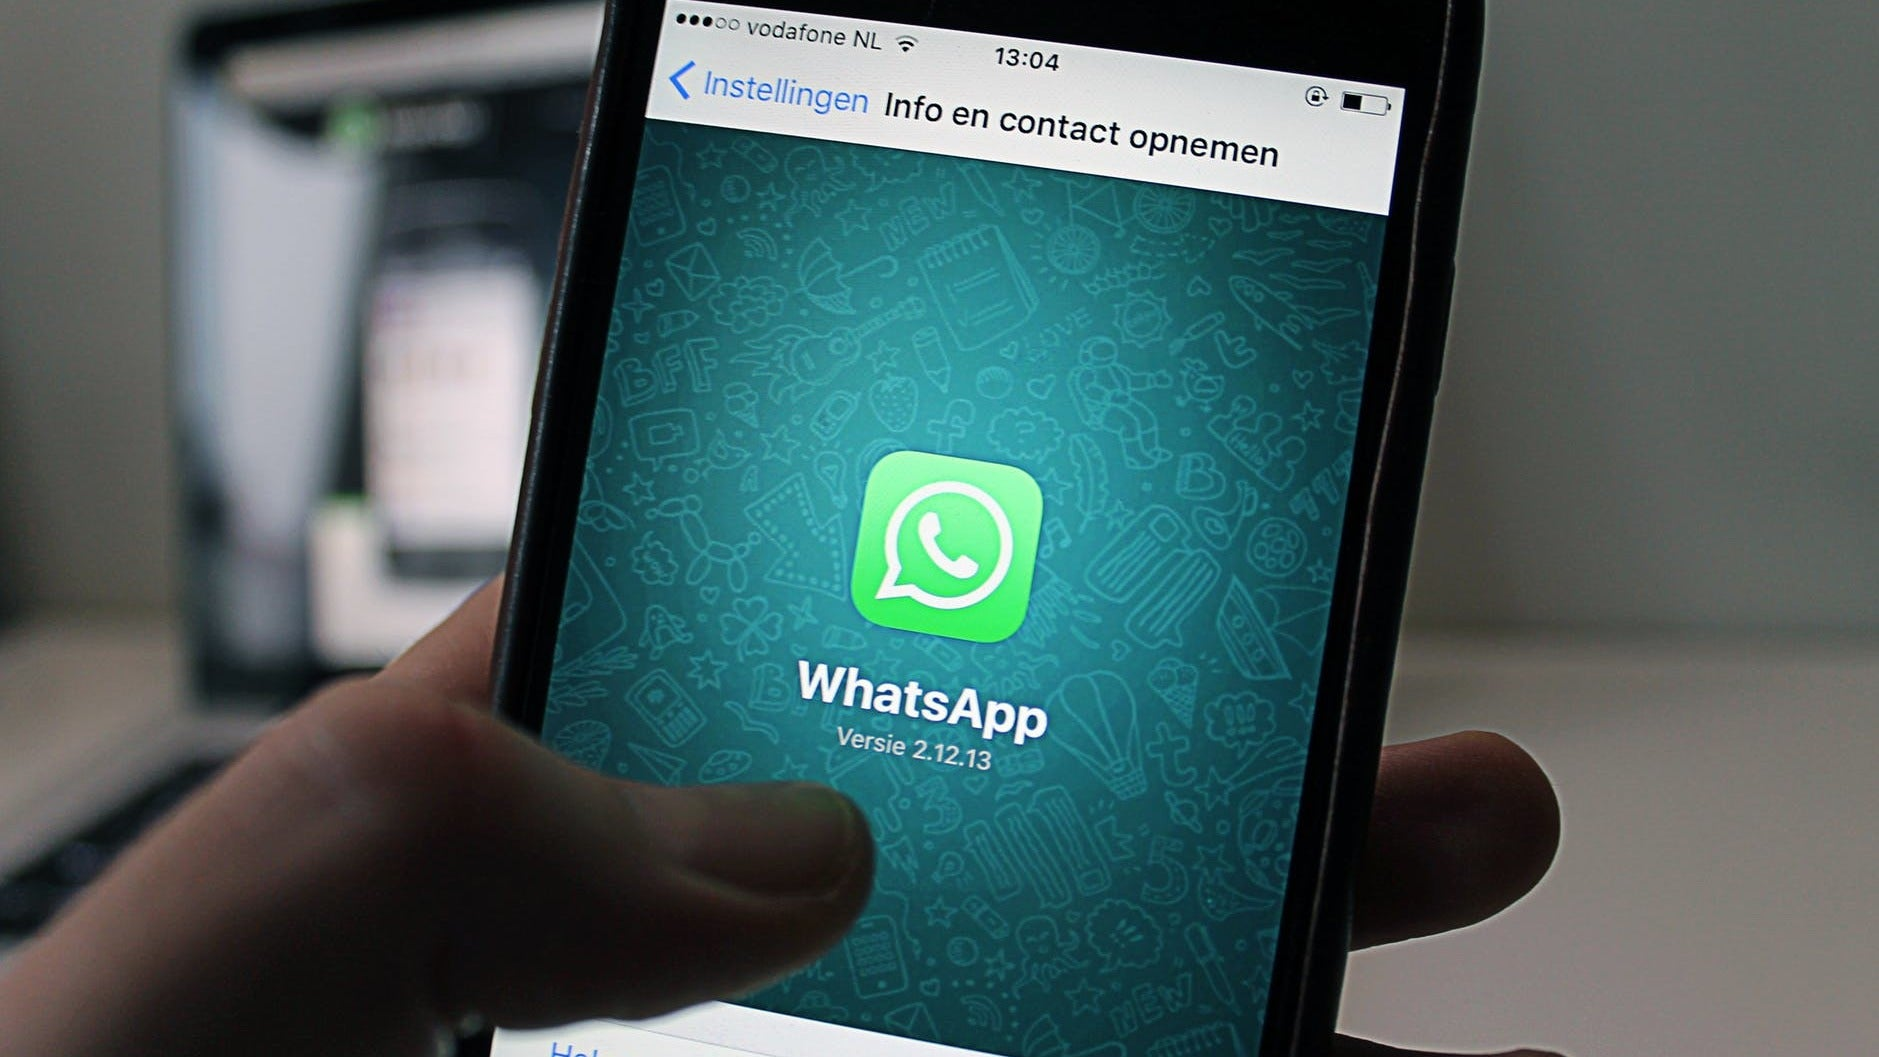 That WhatsApp Security Flaw Isn't As Bad As It Sounds